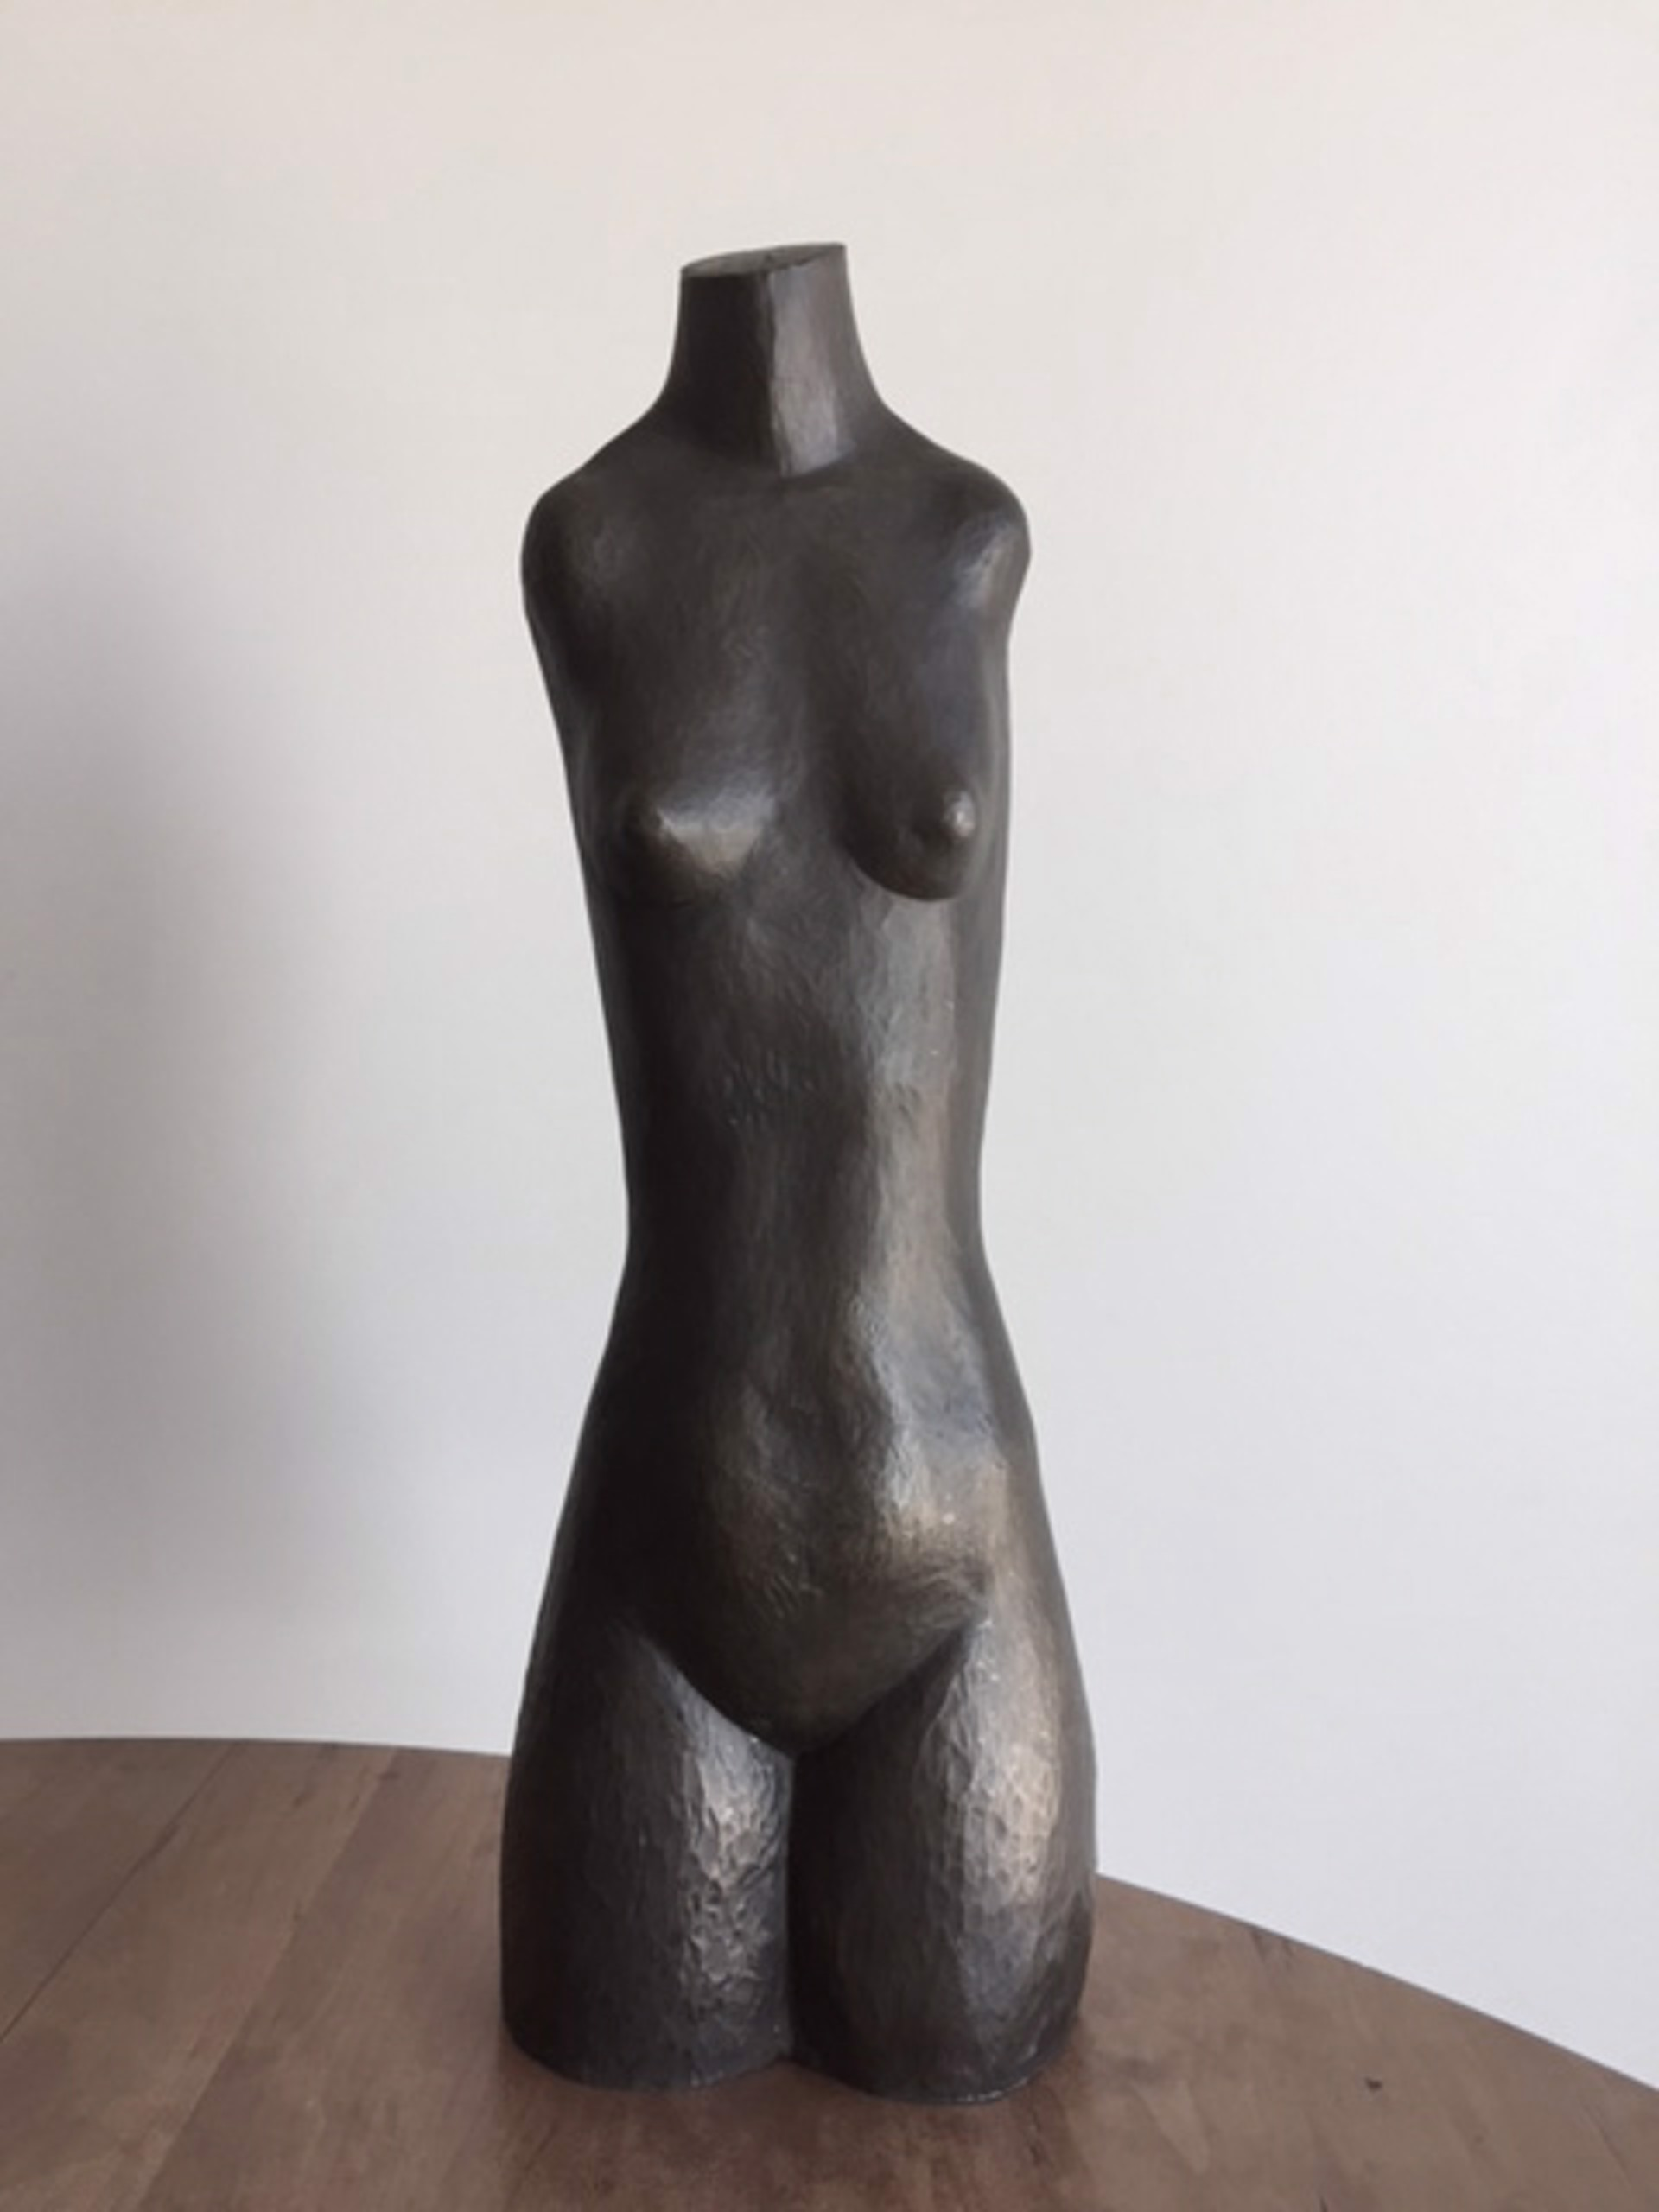 Untitled (female nude   torso) by Eli Levin